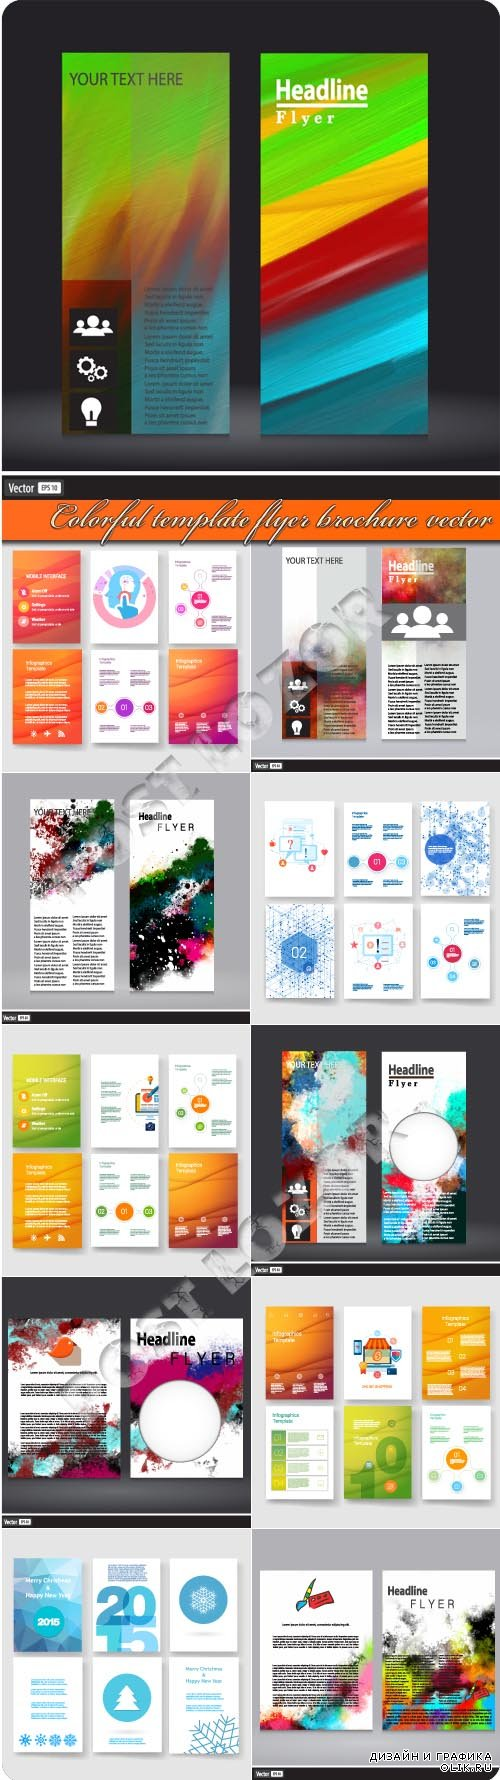 Colorful template flyer brochure vector